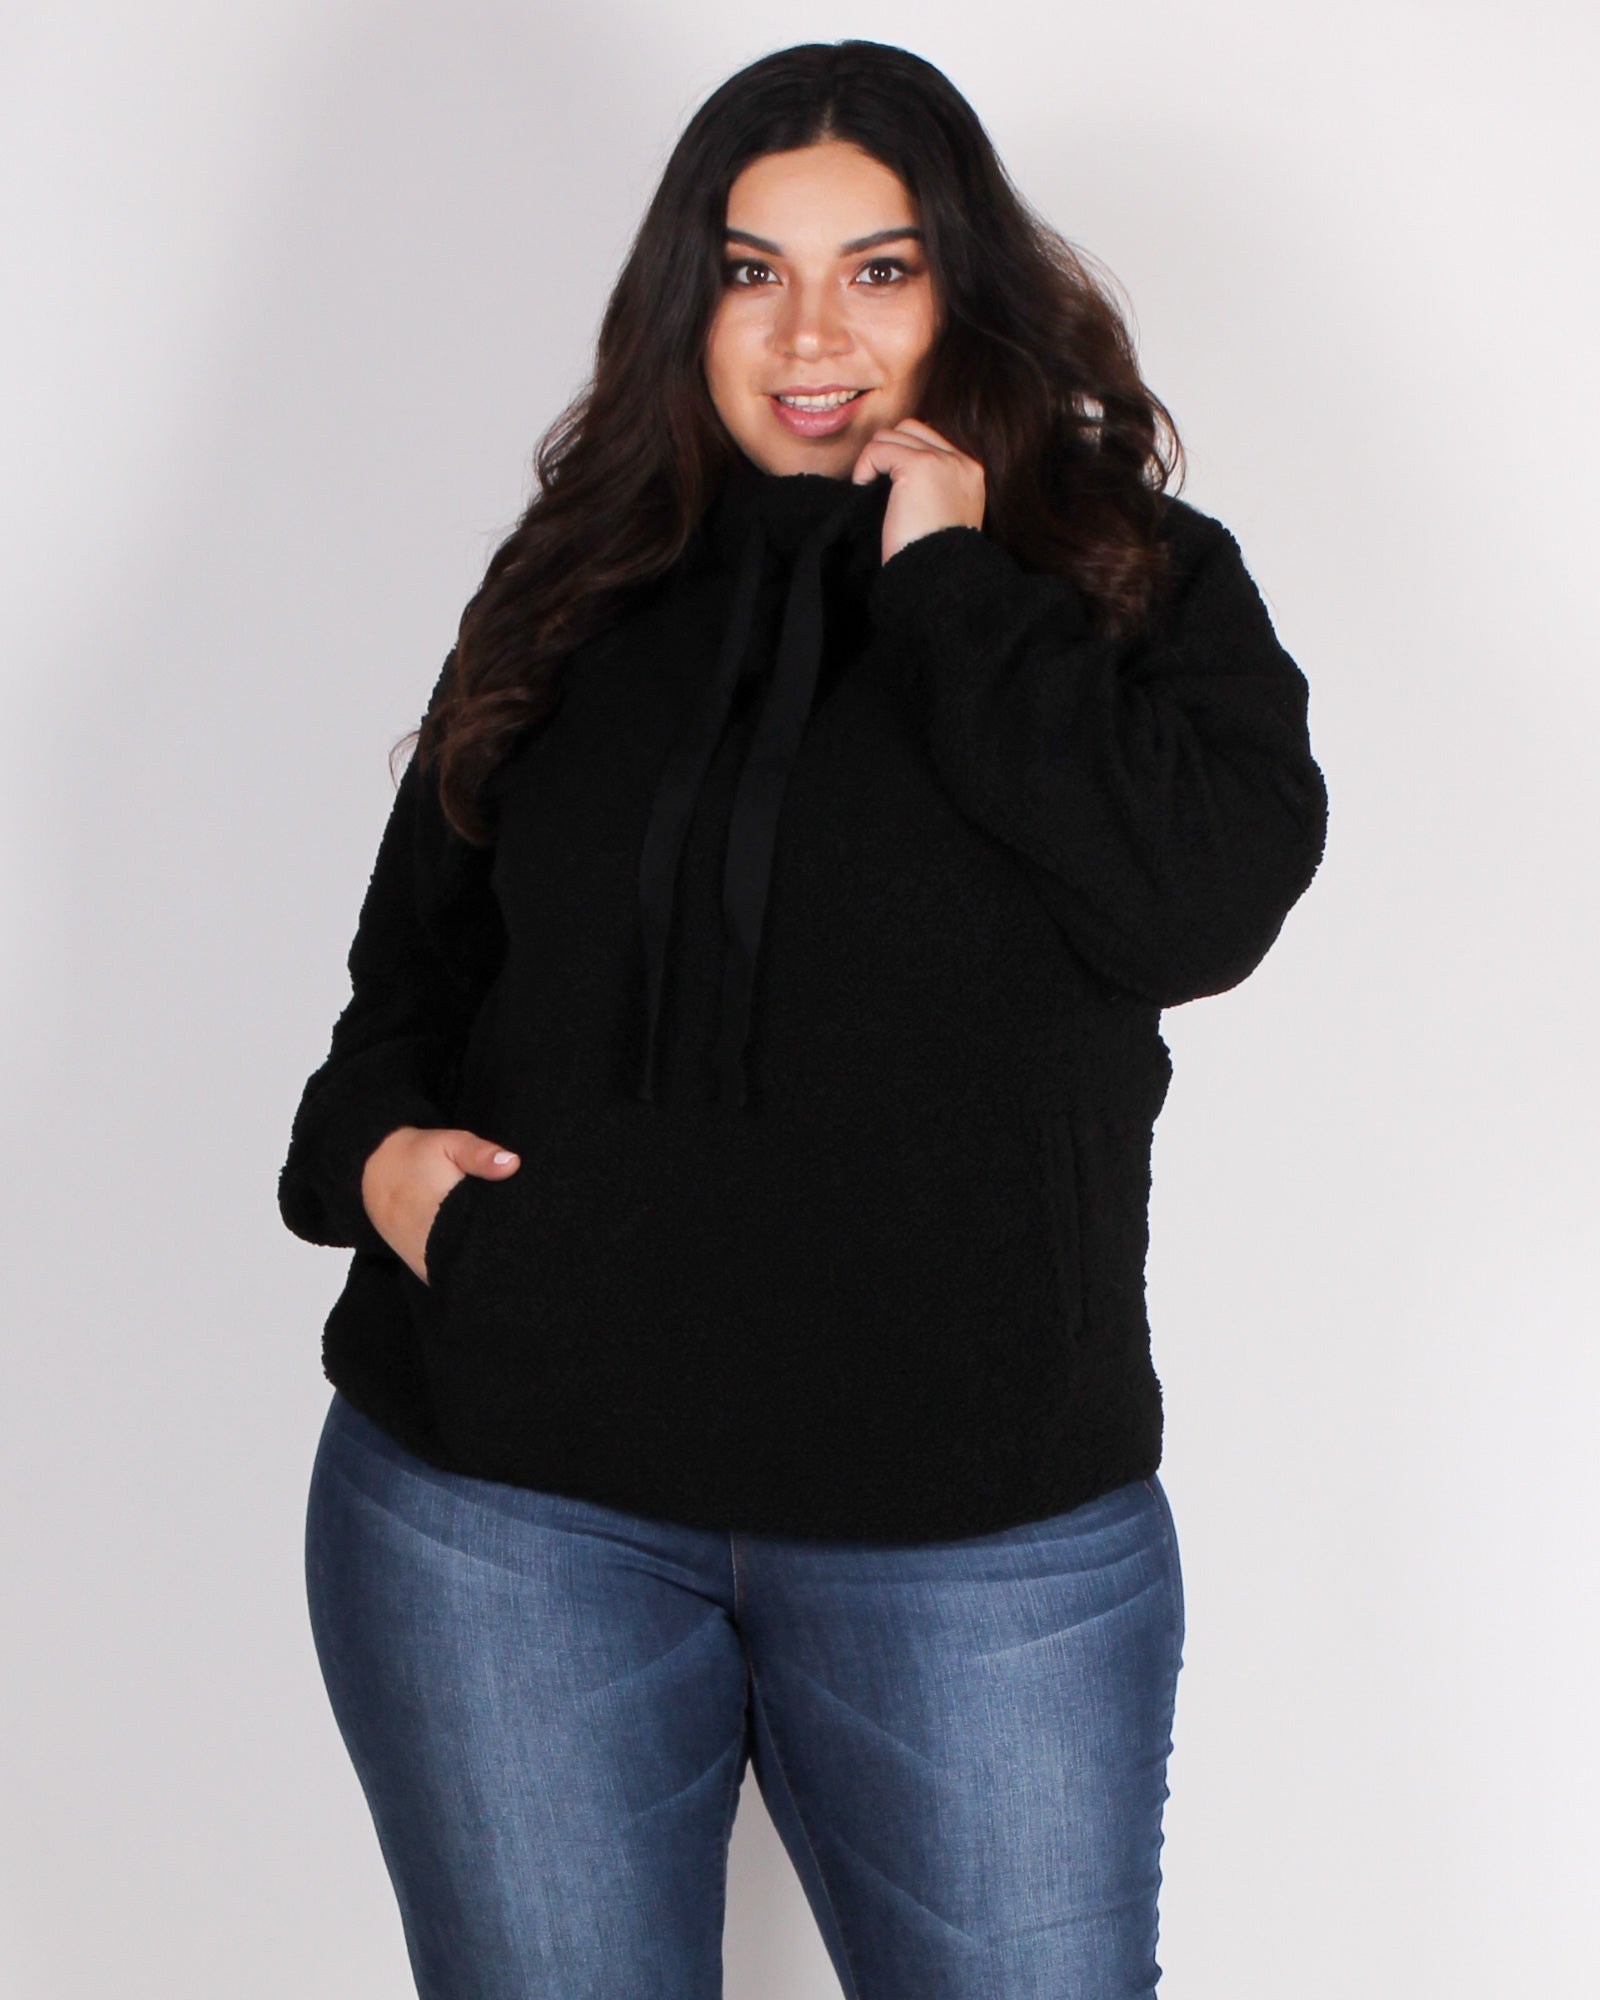 Fashion Q Shop Q An Adventure is Beginning Teddy Bear Pullover (Black) IT4231-1